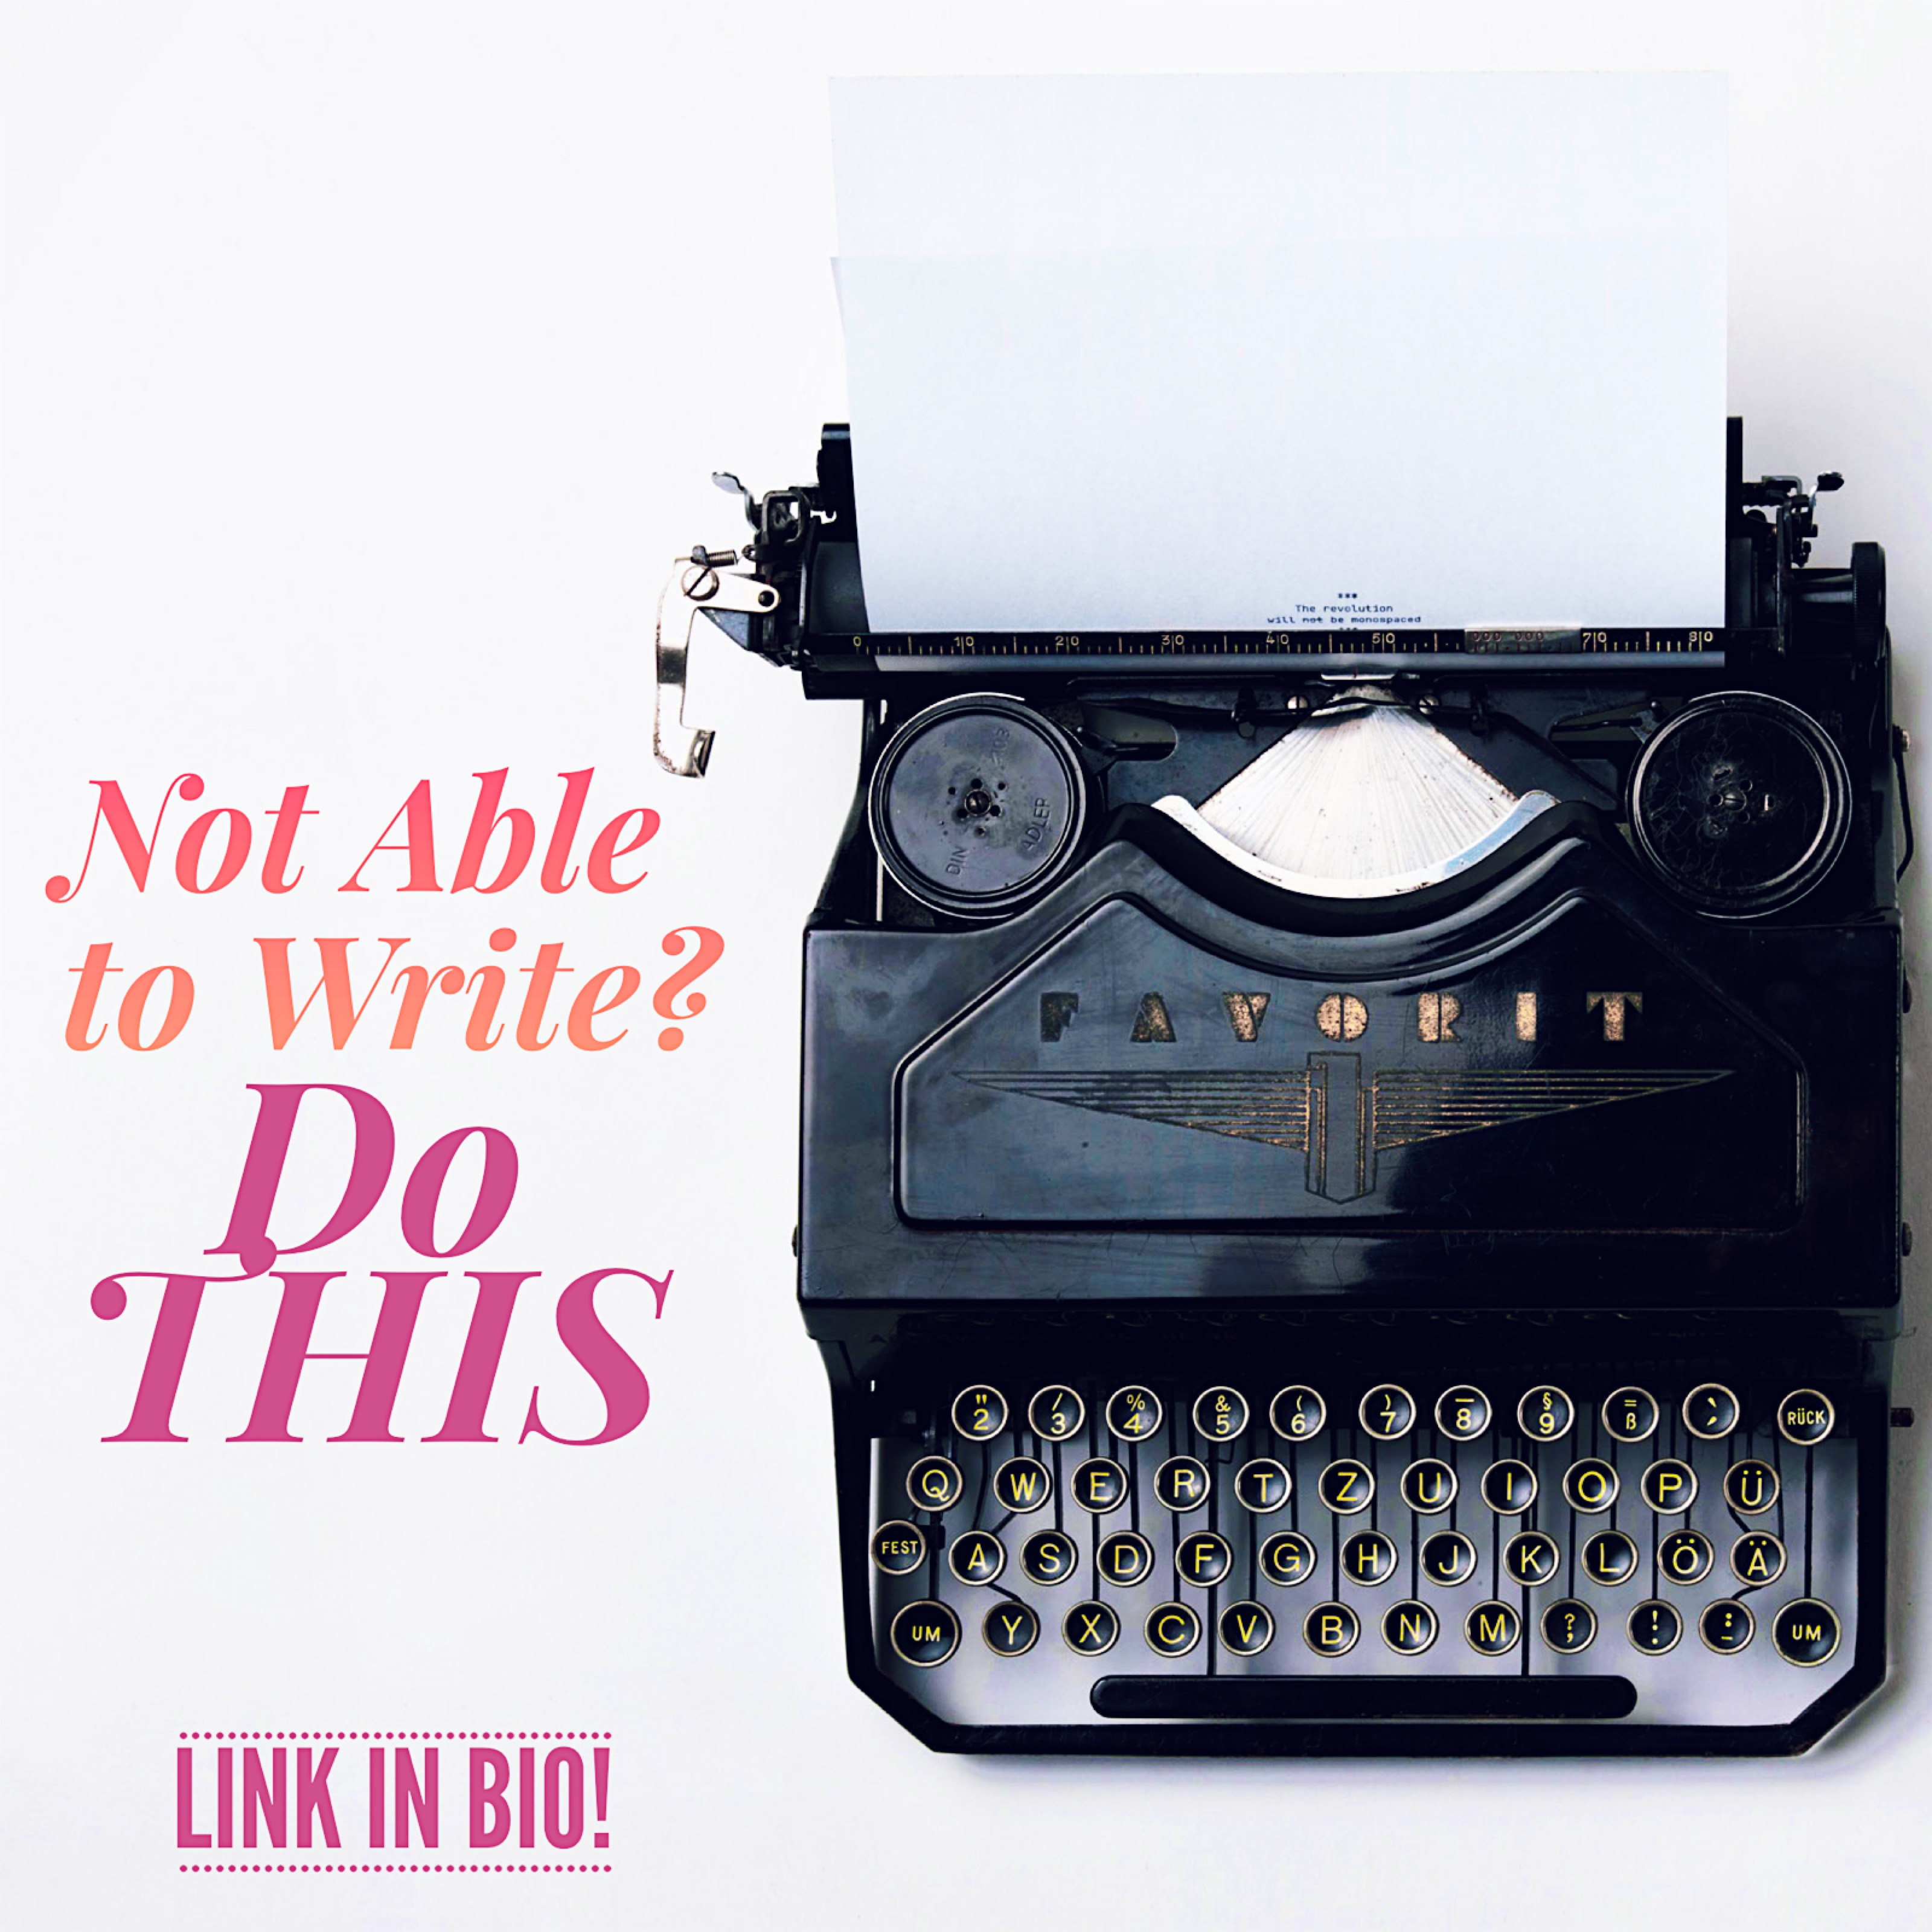 Not Able to Write? Do THIS by Diana Tyler